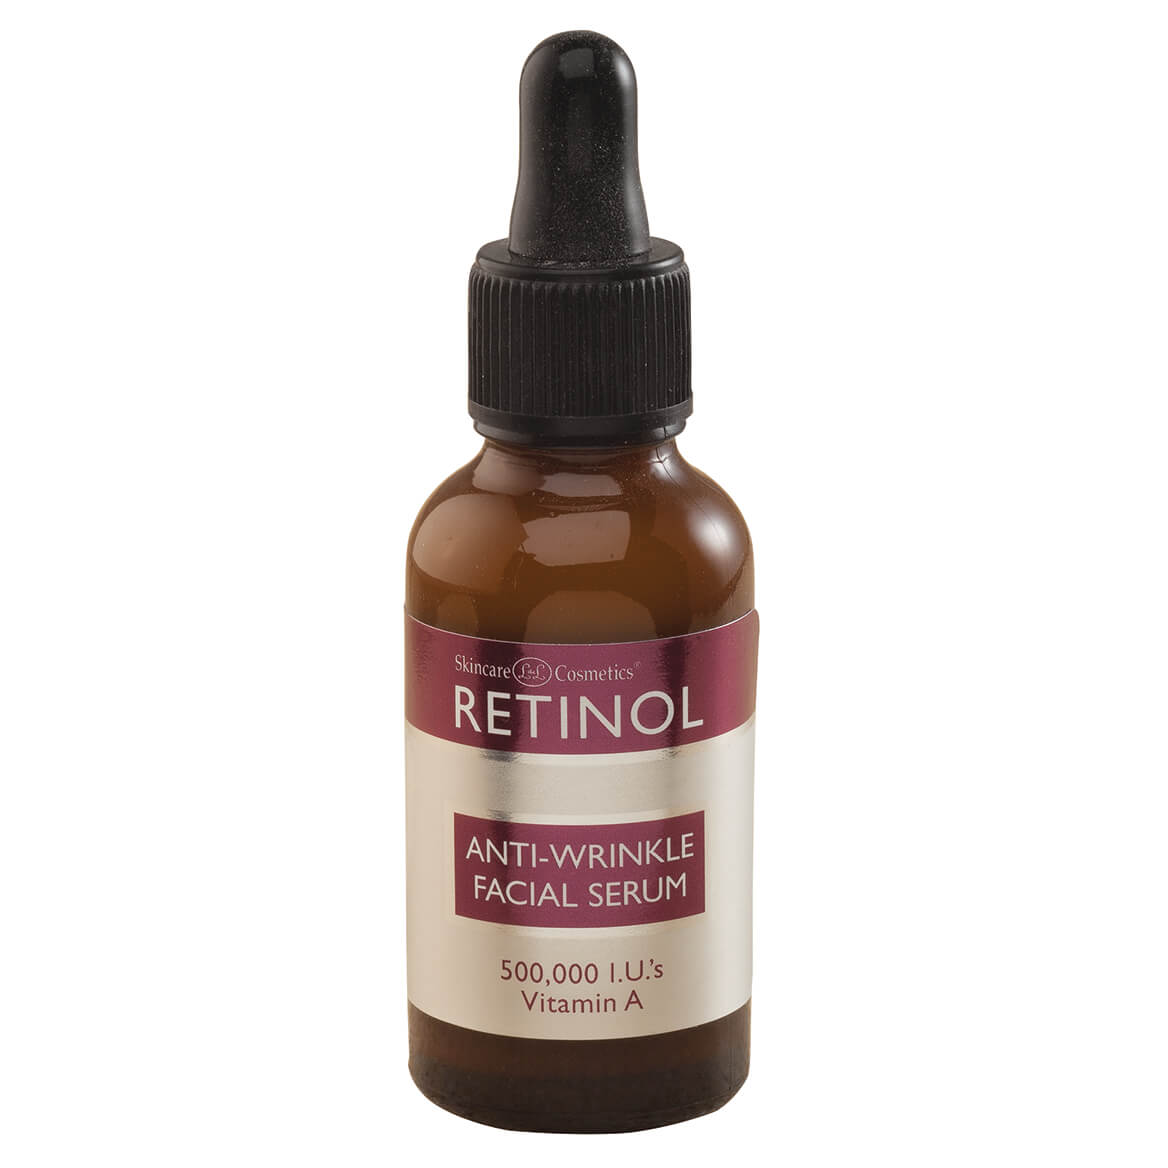 Skincare Cosmetics® Retinol Anti-Wrinkle Facial Serum